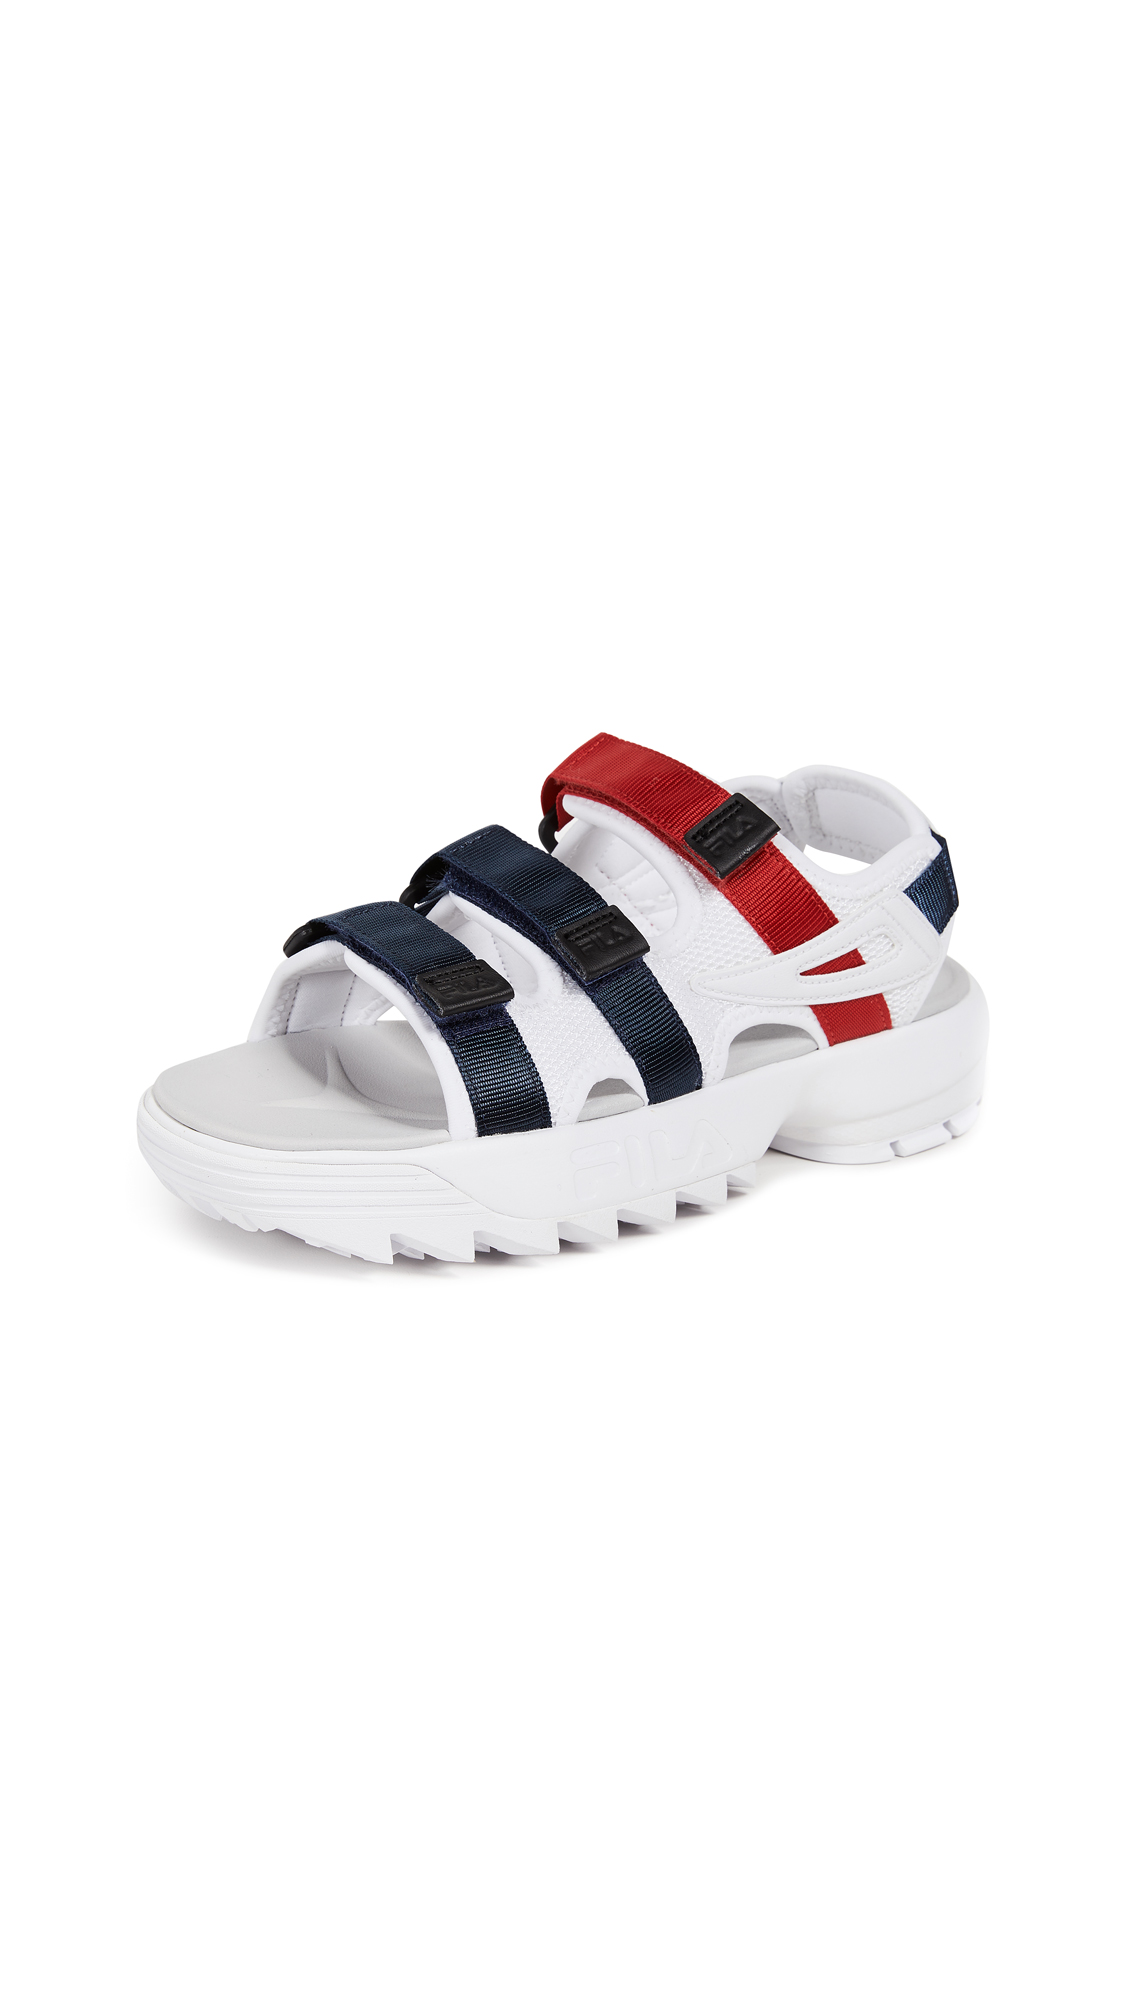 Fila Disrupter Sandals